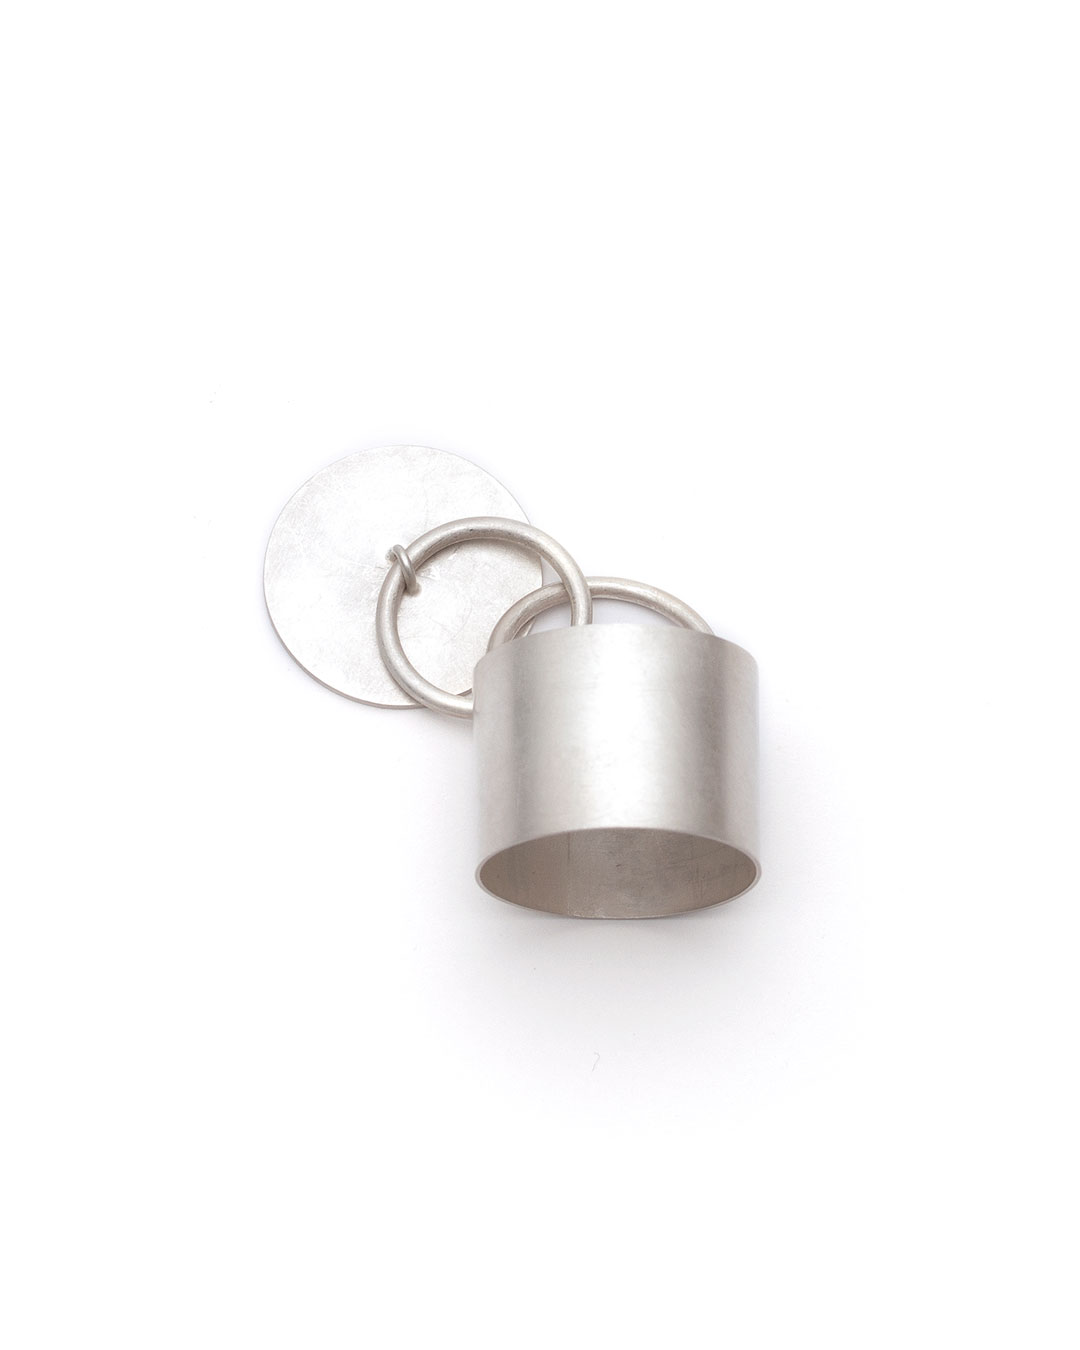 Junwon Jung, untitled (round), 2016, ring; silver, 30 x 30 x 40 mm, €700